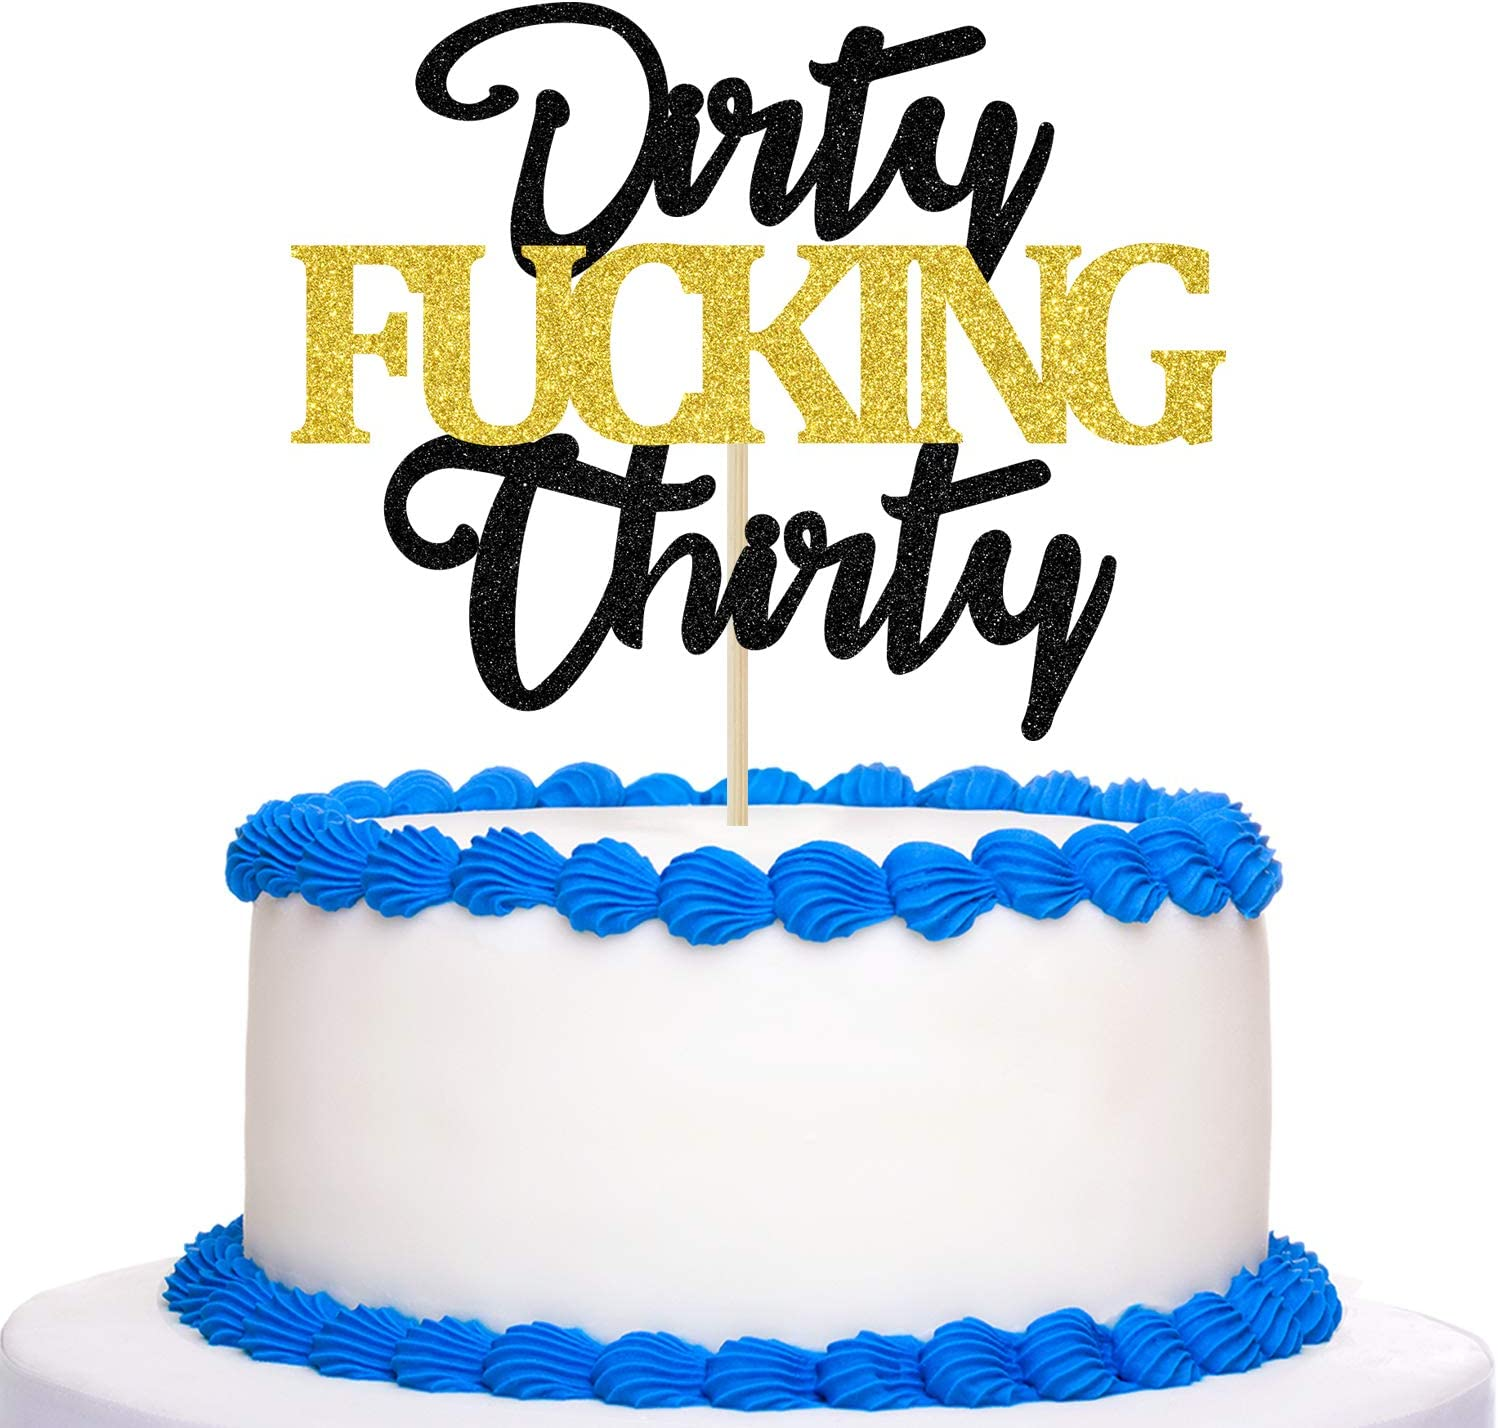 Happy 30th Bithday Cake topper Gold Glitter Dirty Fucking Thirty Cake Topper Cheers to 30 Years Old Birthday Party Decoration Supplies